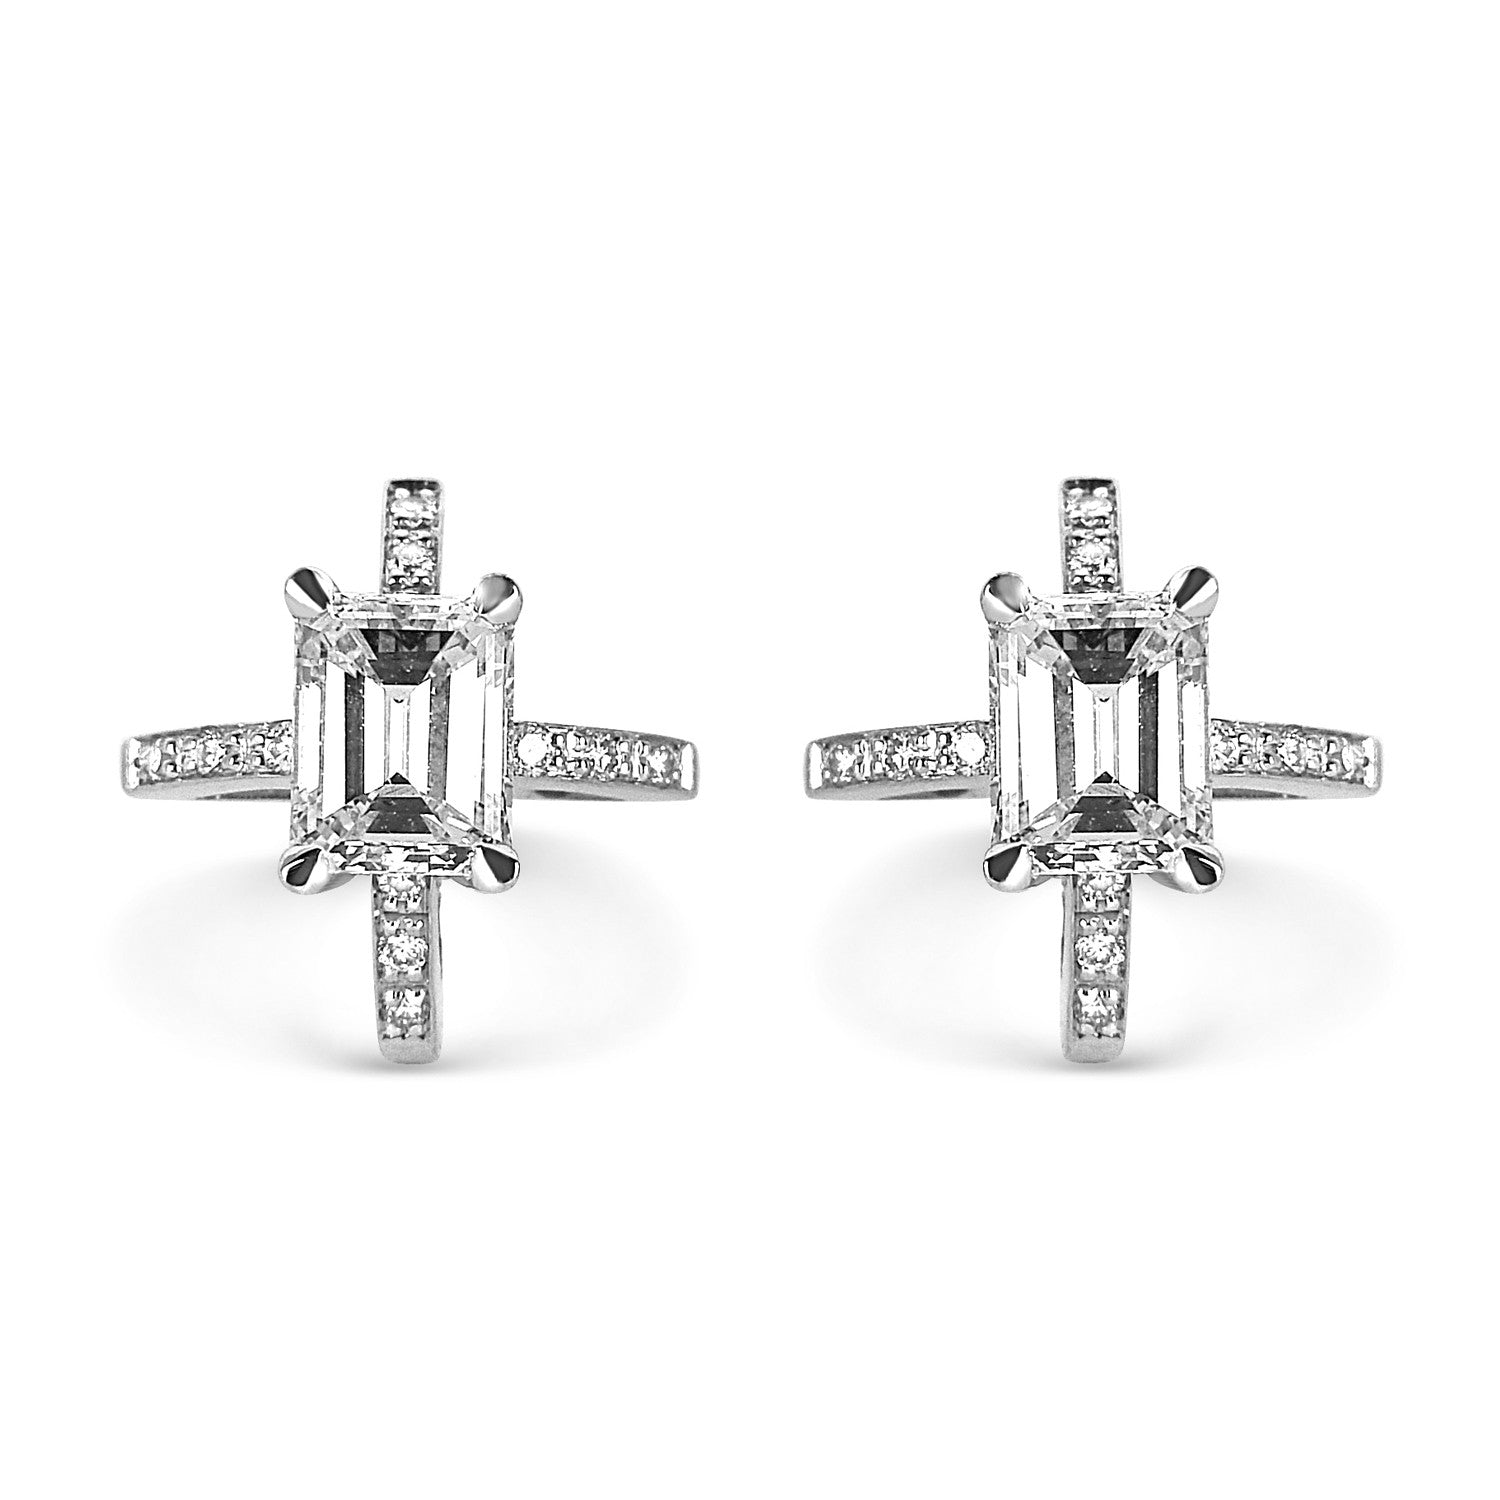 Bespoke Jewellery - Shairose Diamond Earrings v2 - Arabel Lebrusan